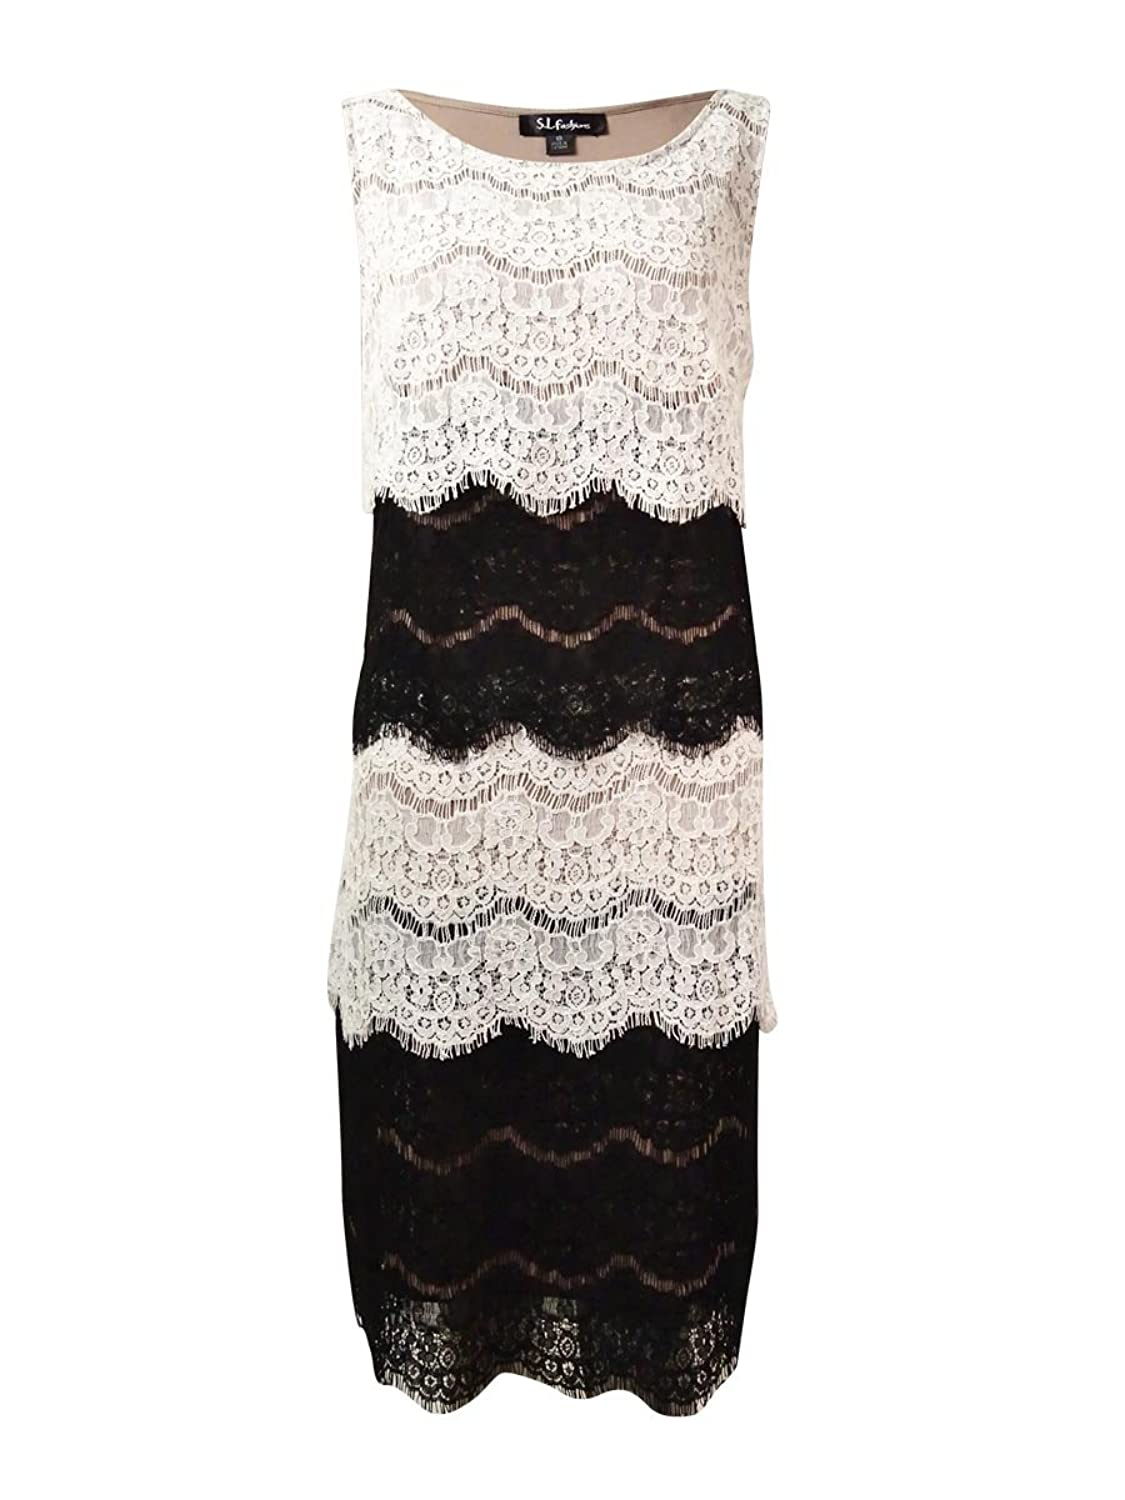 S.L. Fashions Women's Two-Tone Tiered Lace Dress